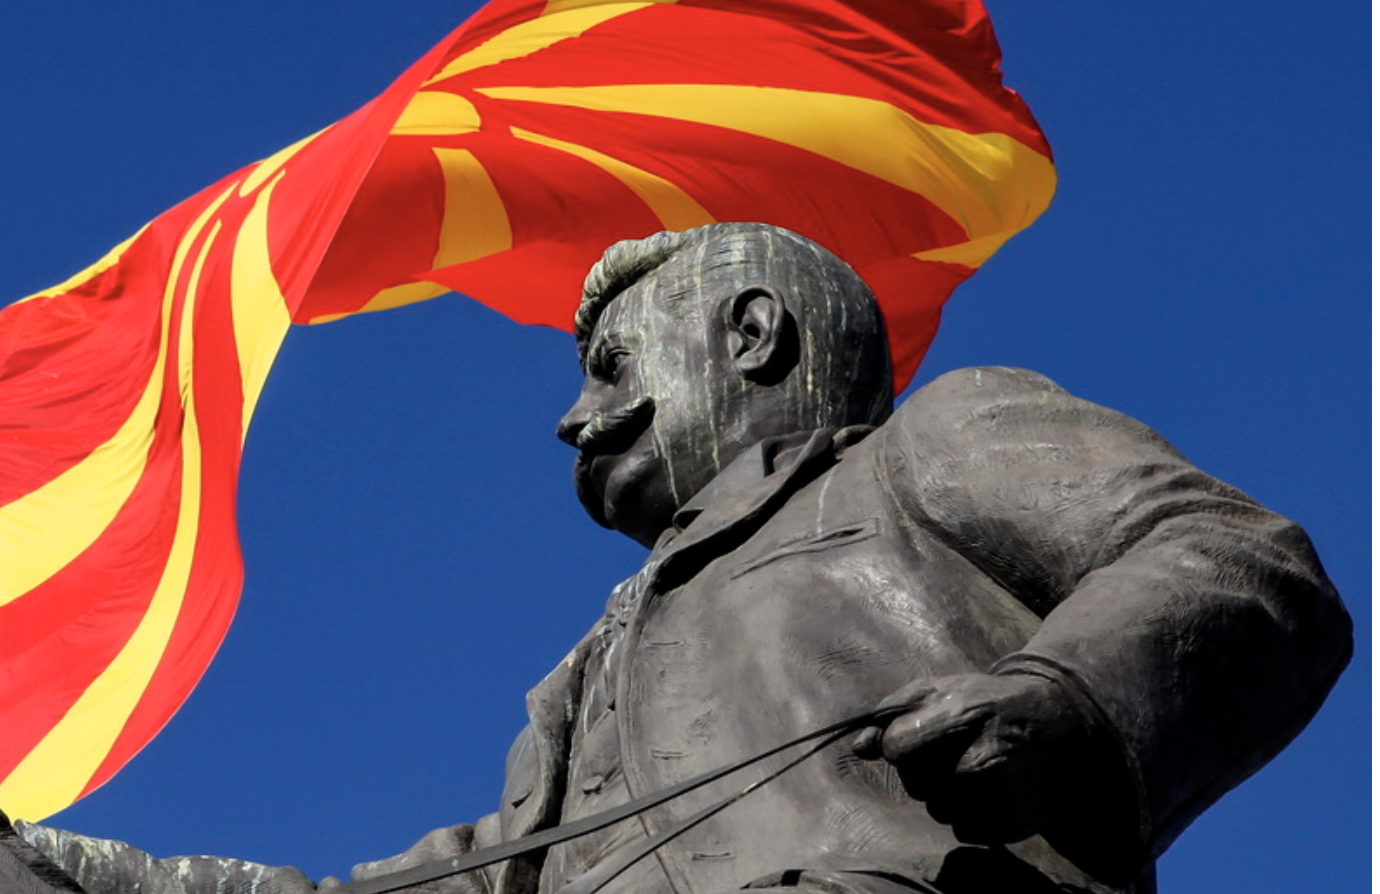 North Macedonia: No progress made on work of Historical Committee